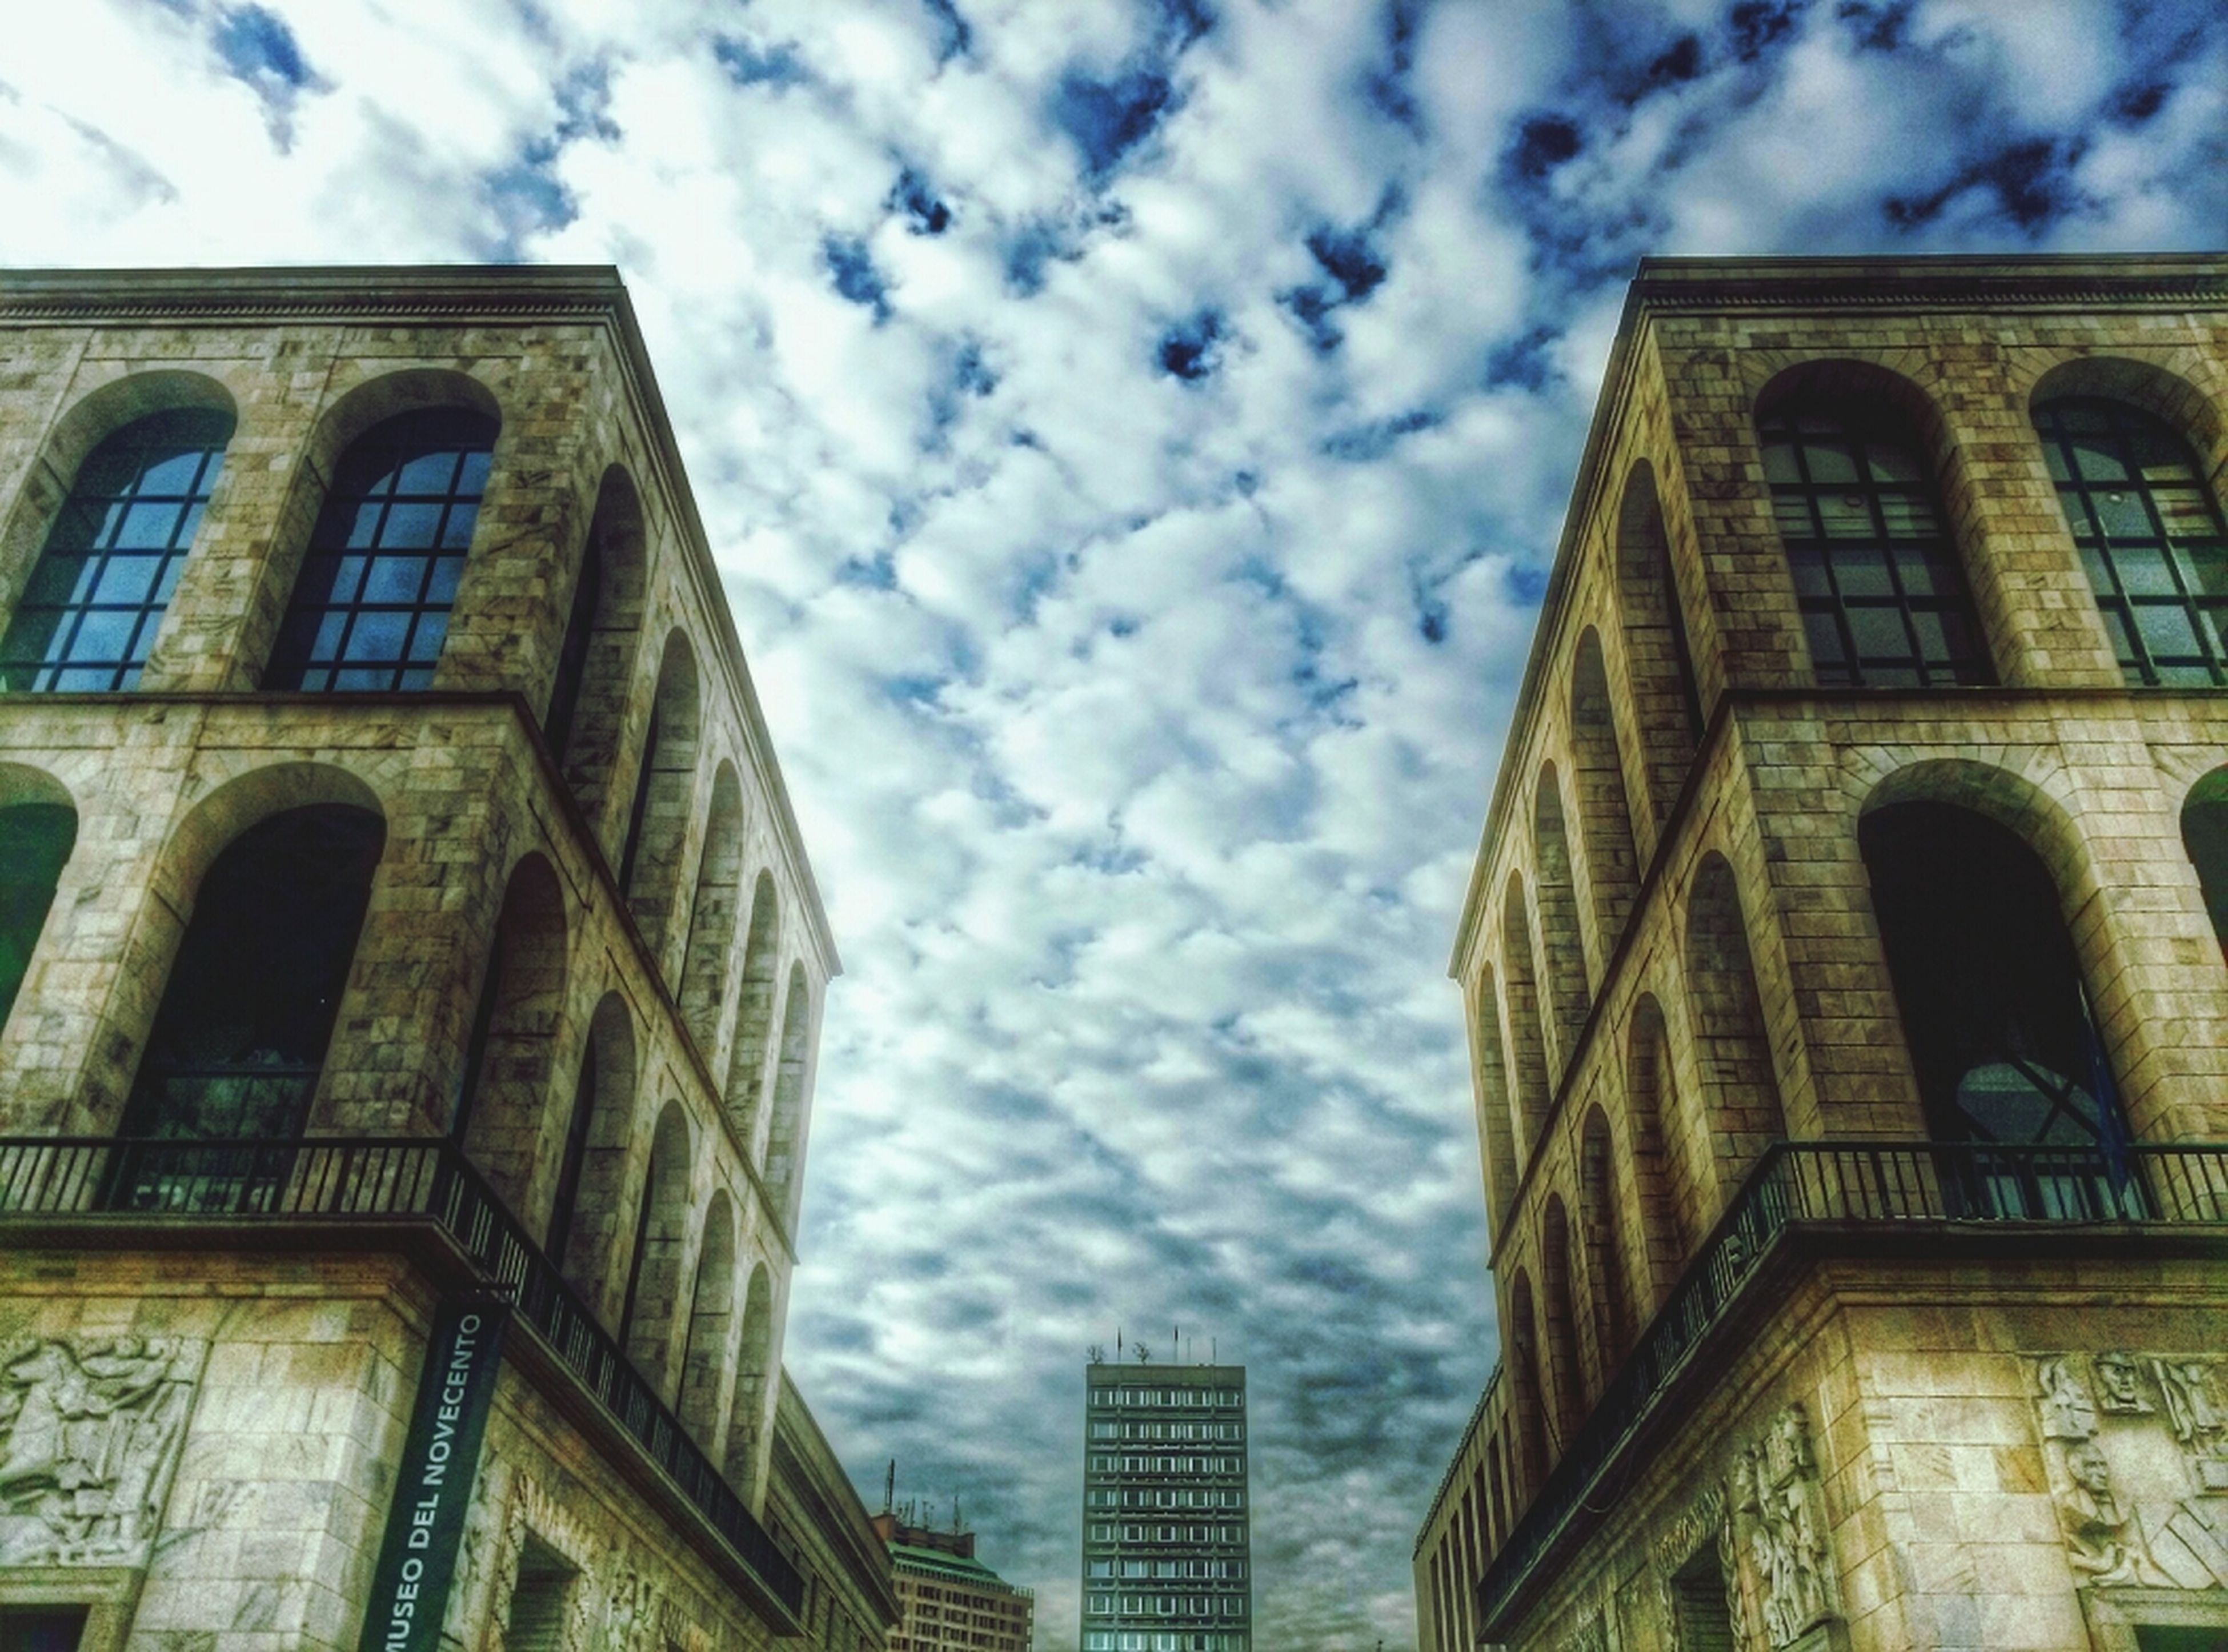 architecture, building exterior, built structure, low angle view, sky, cloud - sky, cloud, window, building, city, cloudy, day, arch, outdoors, residential building, no people, residential structure, tower, tall - high, glass - material